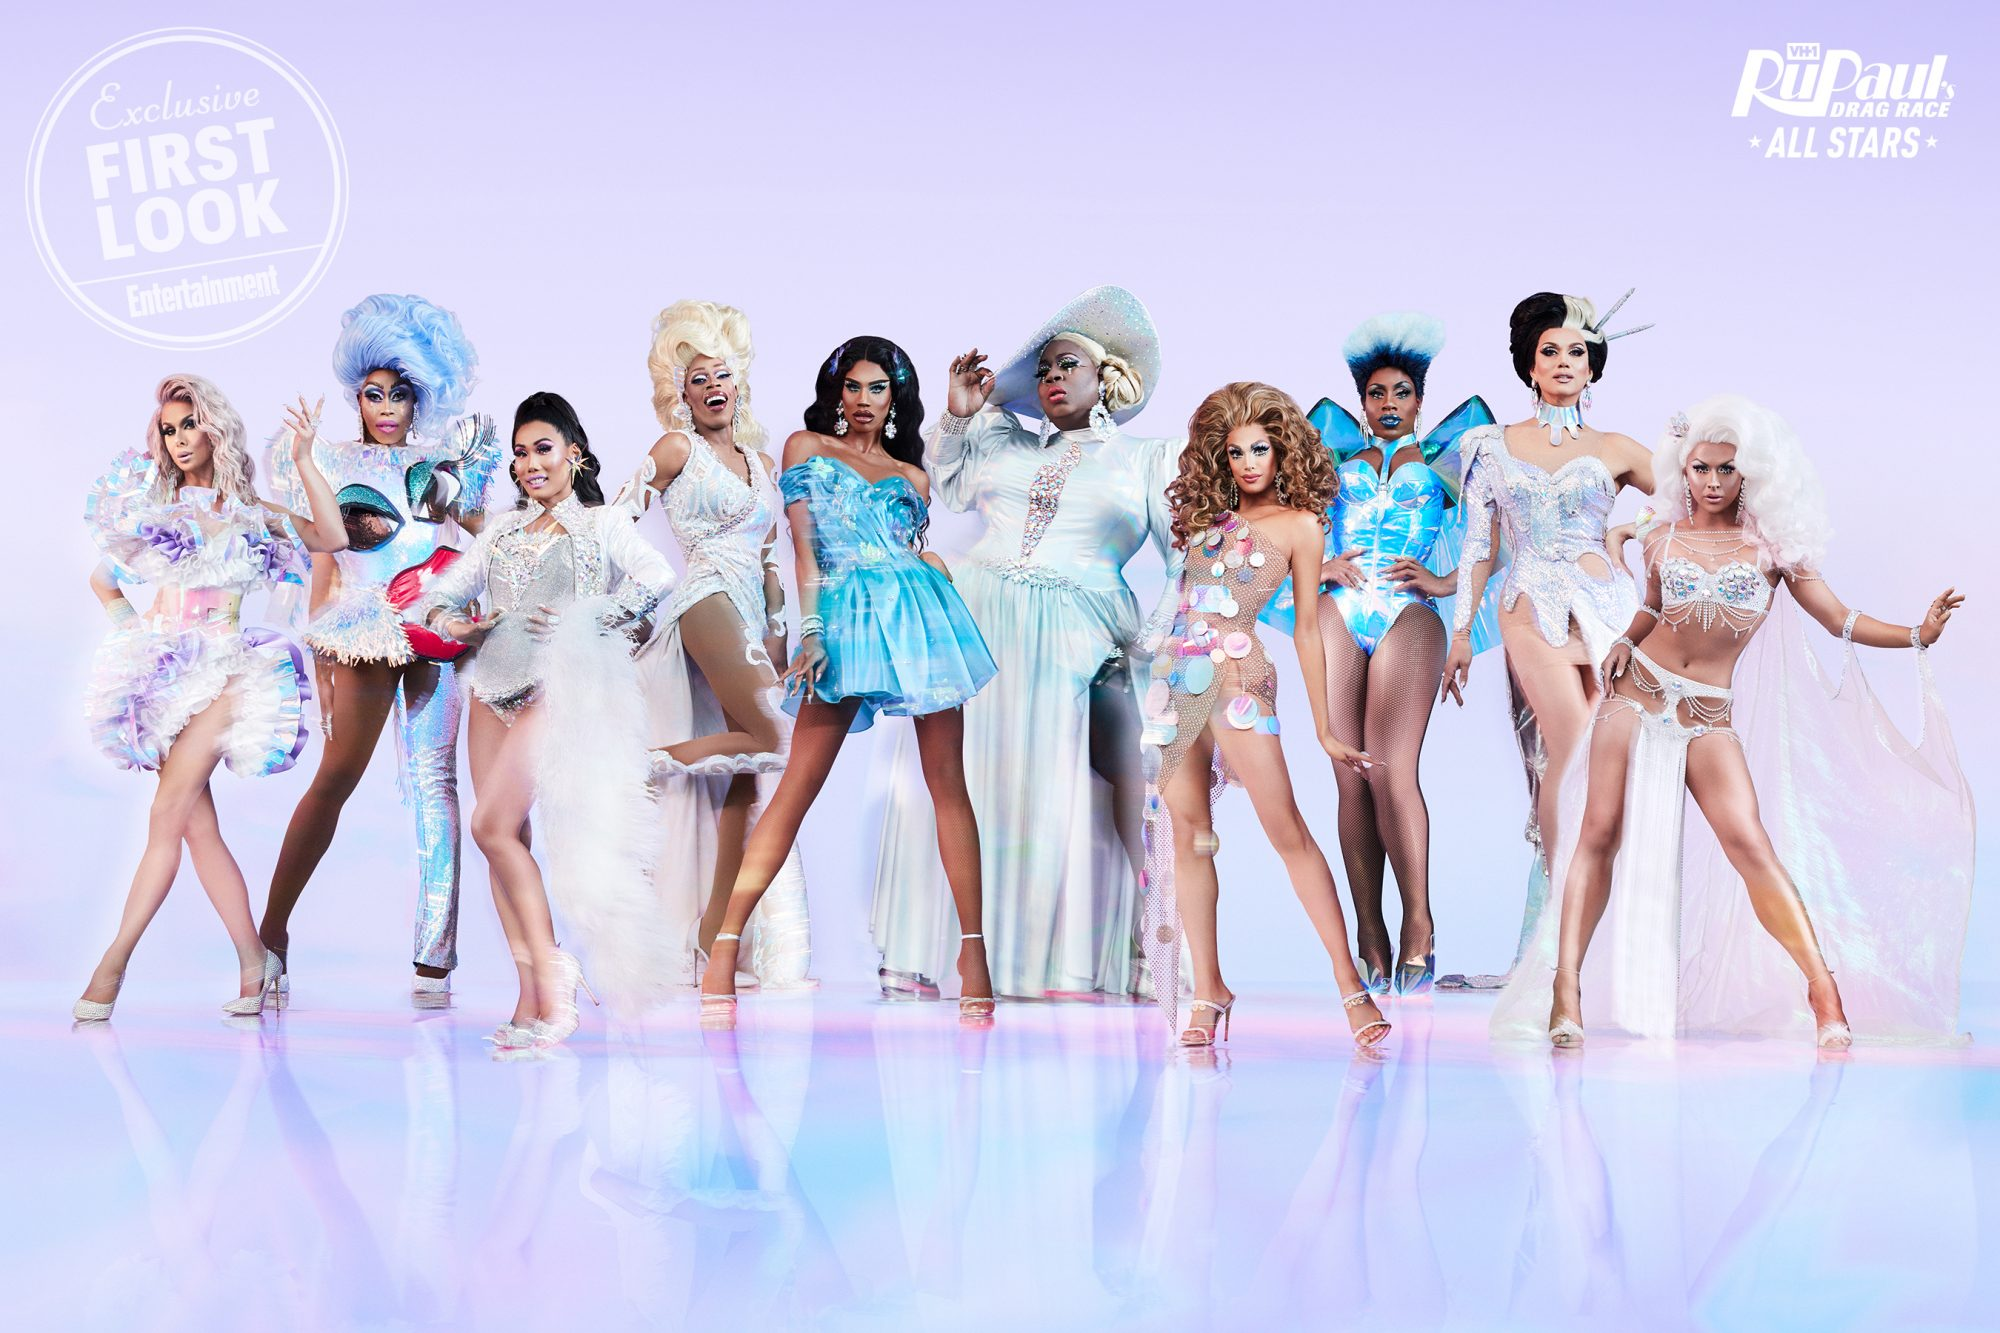 VH1_RPDR_AS4_digital_2700x1800_group